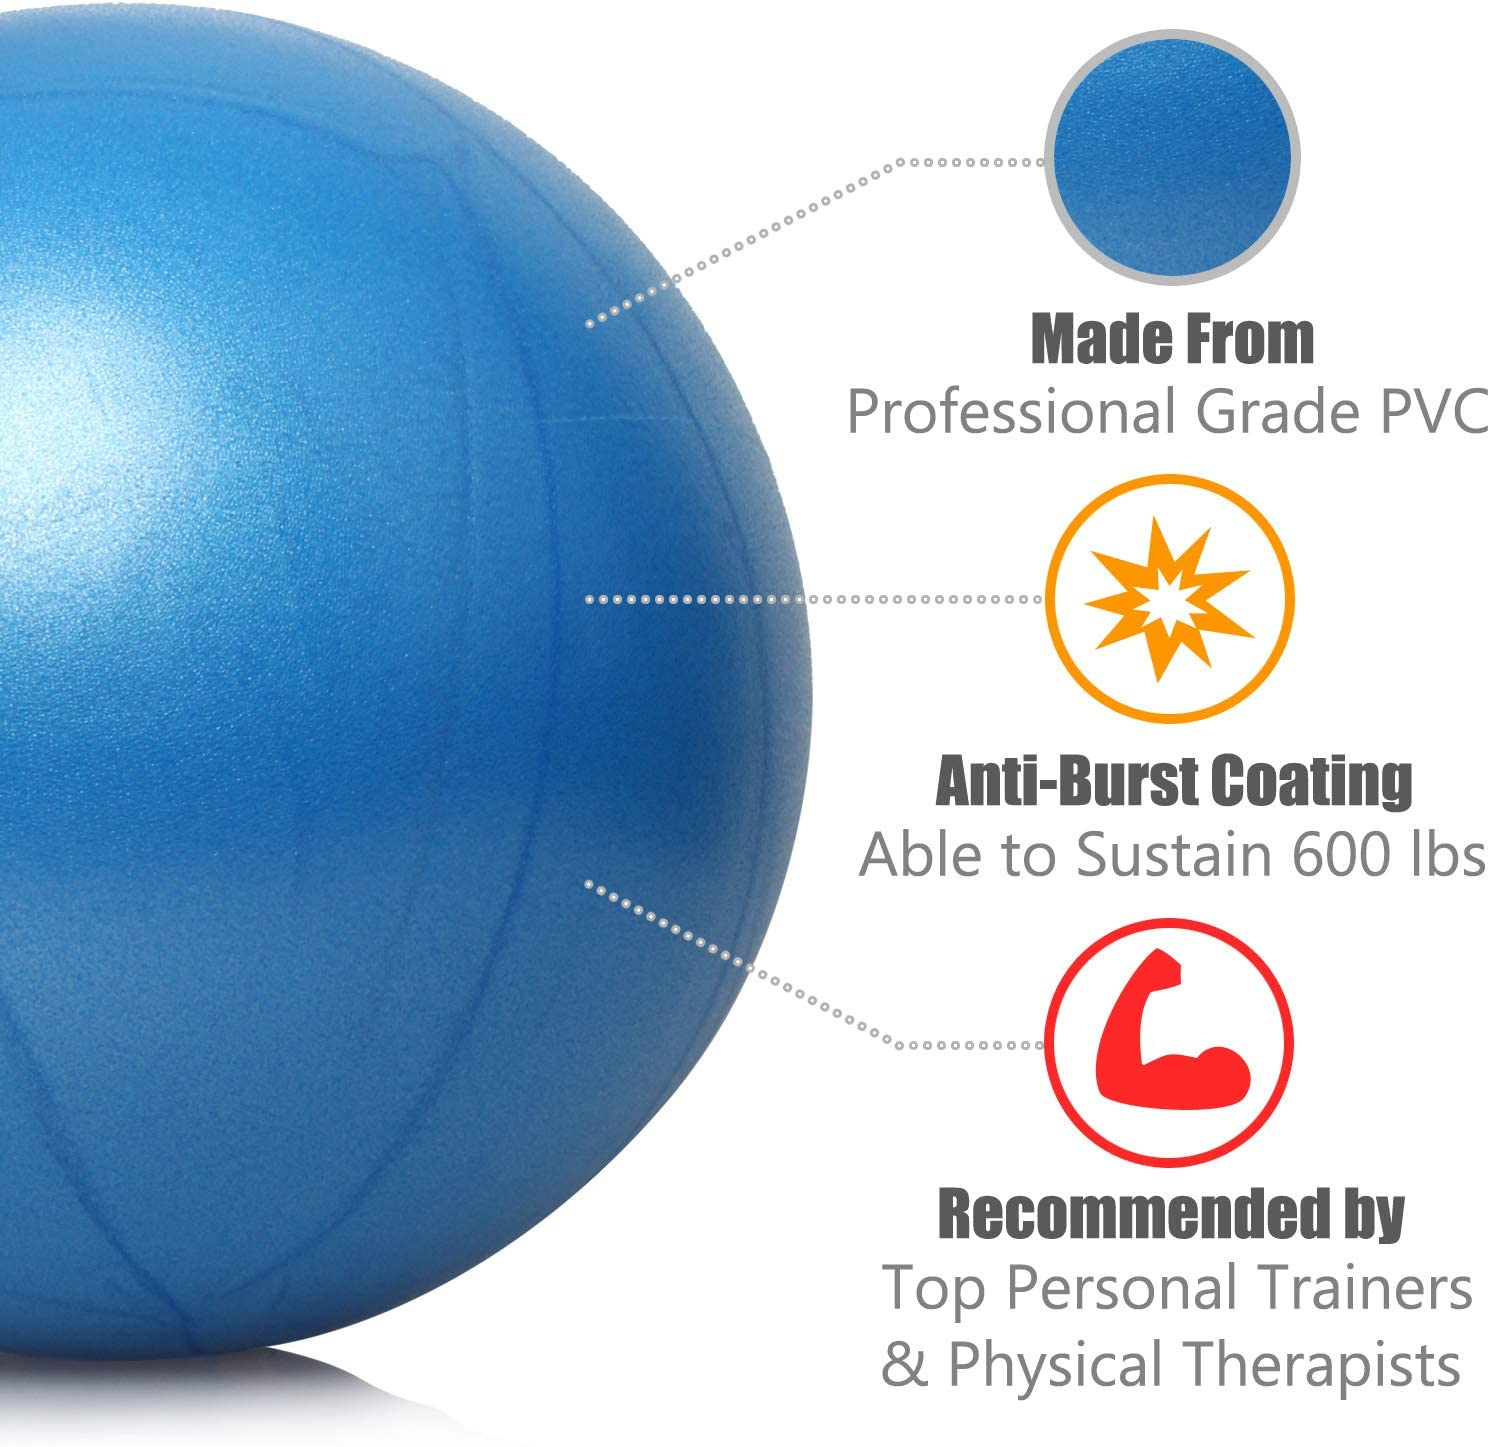 nononfish Exercise Ball Professional Grade Anti-Burst Fitness Yoga Stability Gym Workout Training and Physical Therapy Balance Ball for Pilates Birthing